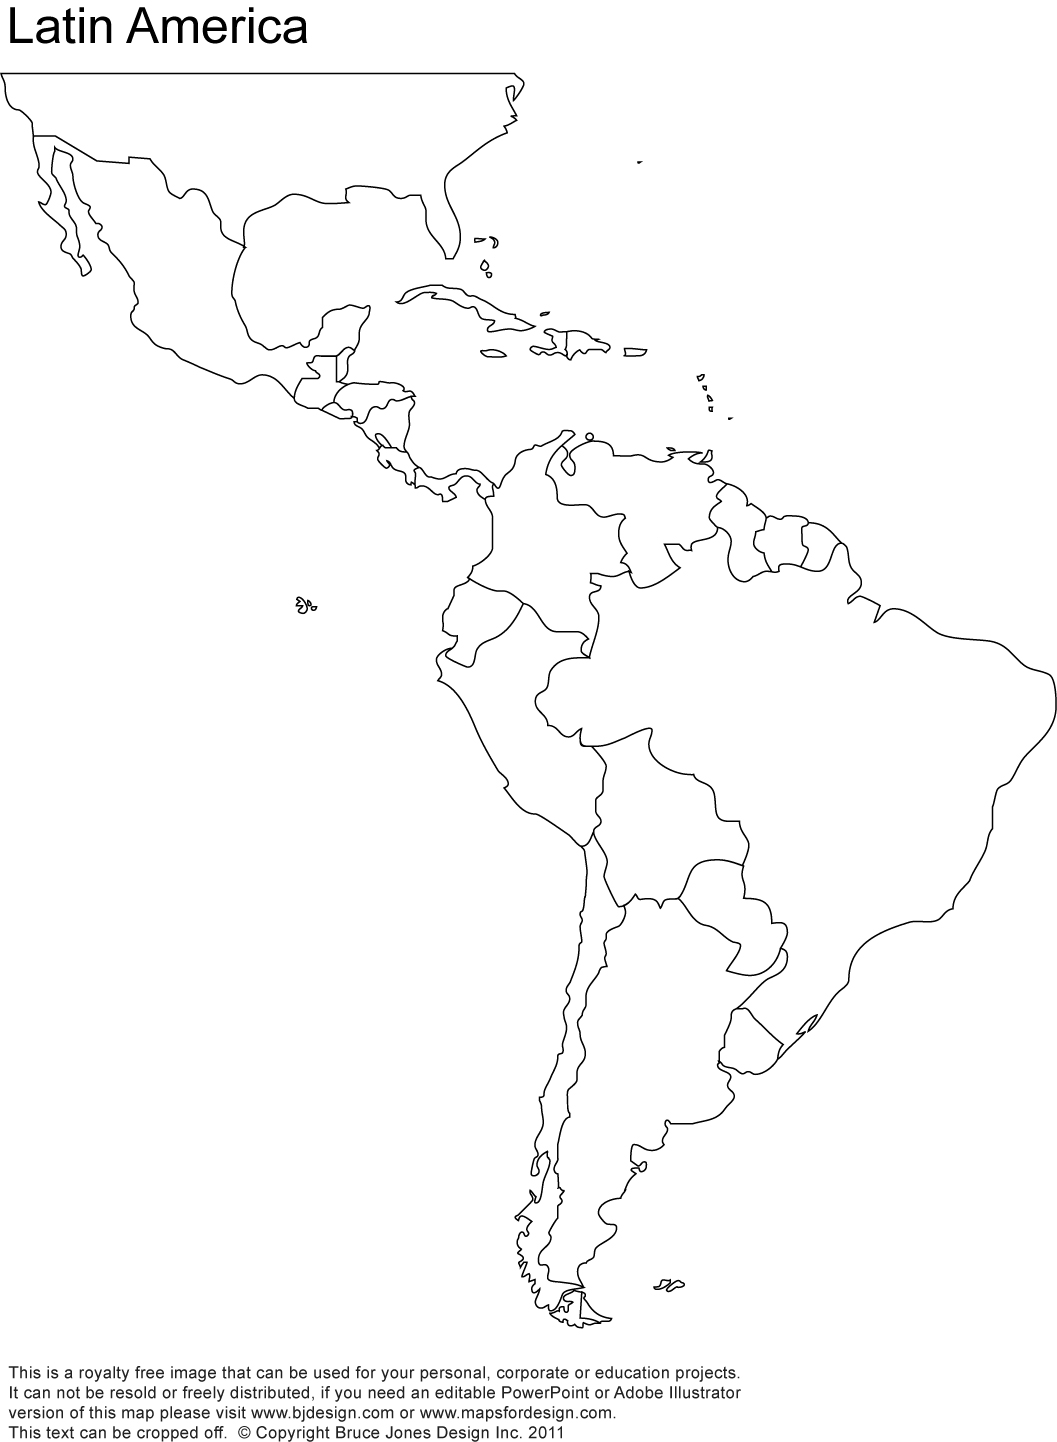 Blank map of latin america targergolden dragon blank map of latin america north and south america blank map toneelgroepblik Image collections